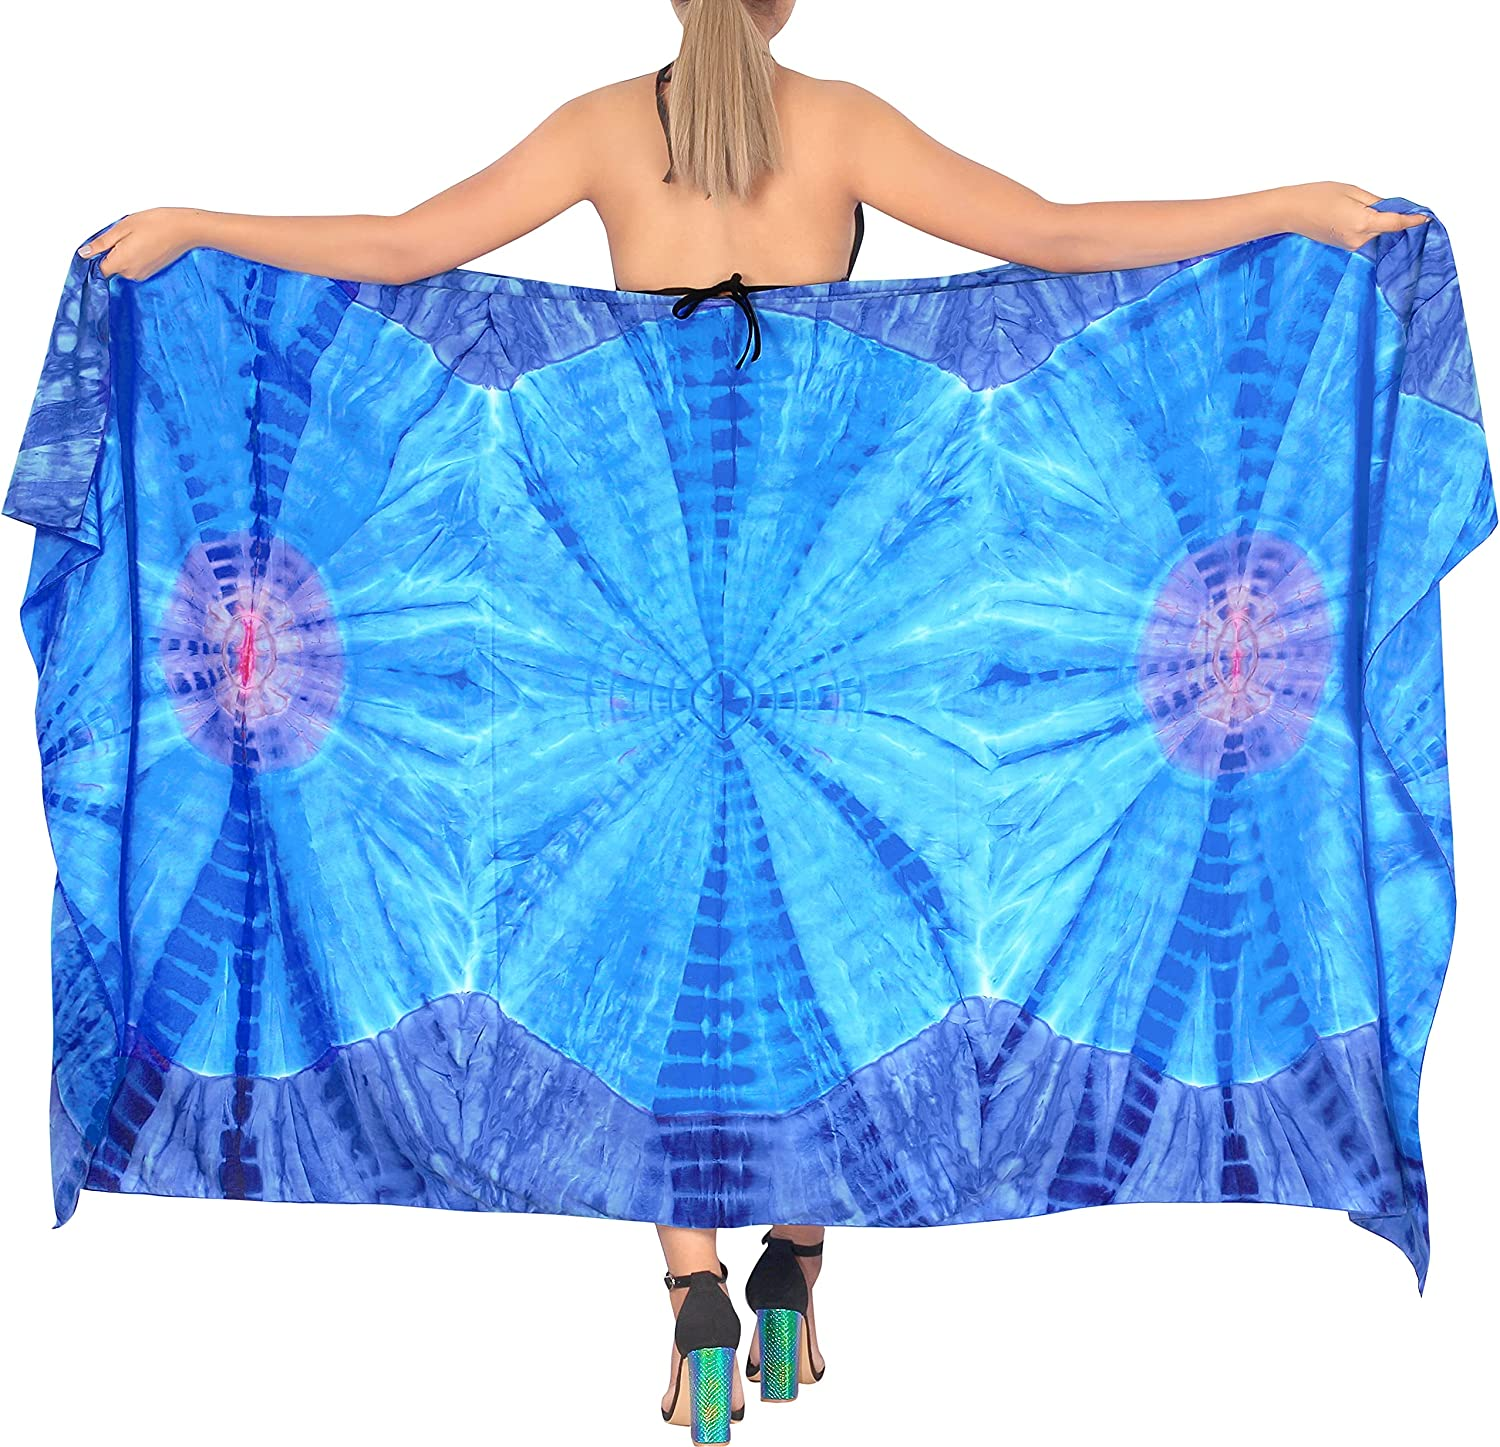 LA LEELA Women's Summer Tie Dye Swimsuit Cover-Ups Sarong in Variety of Colors